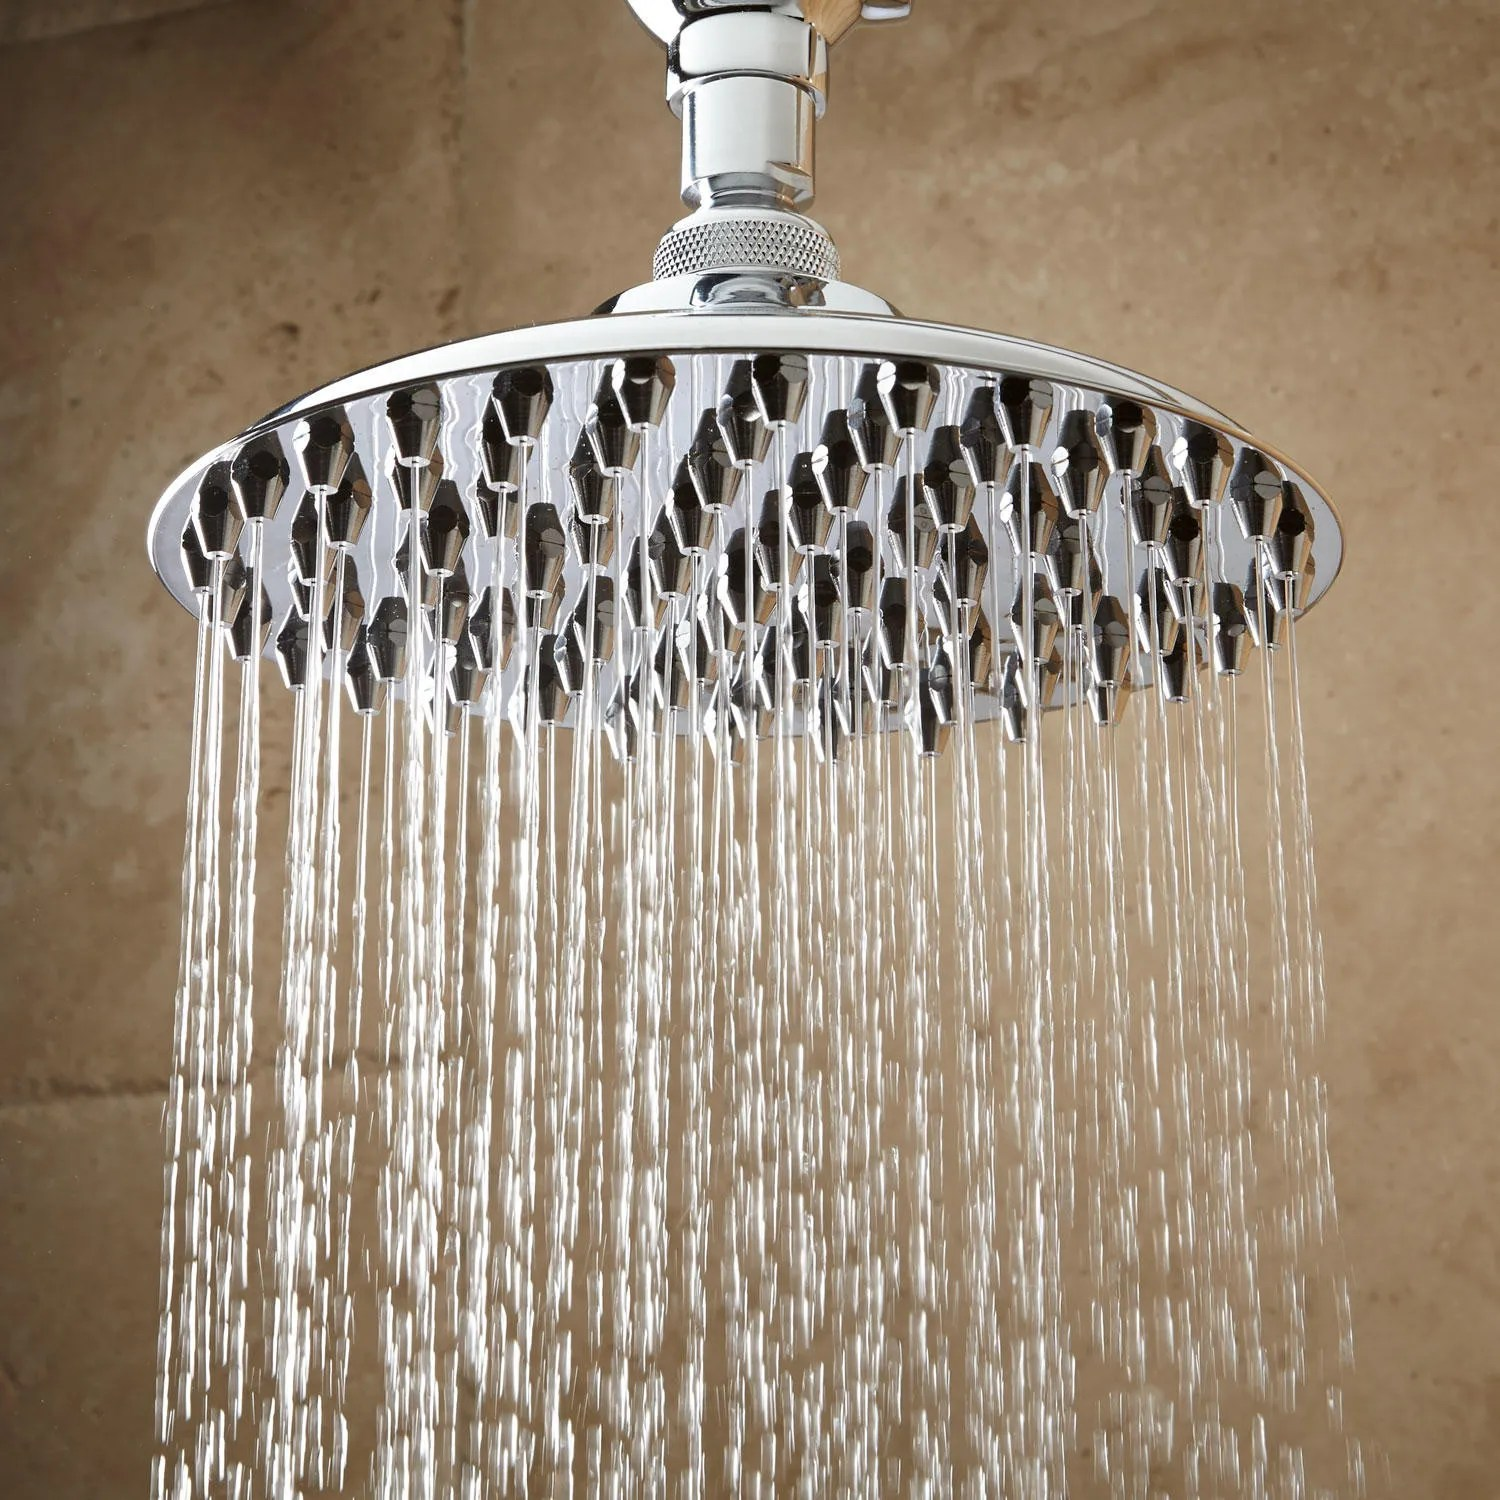 Bostonian Rainfall Nozzle Shower Head with SType Arm  Bathroom